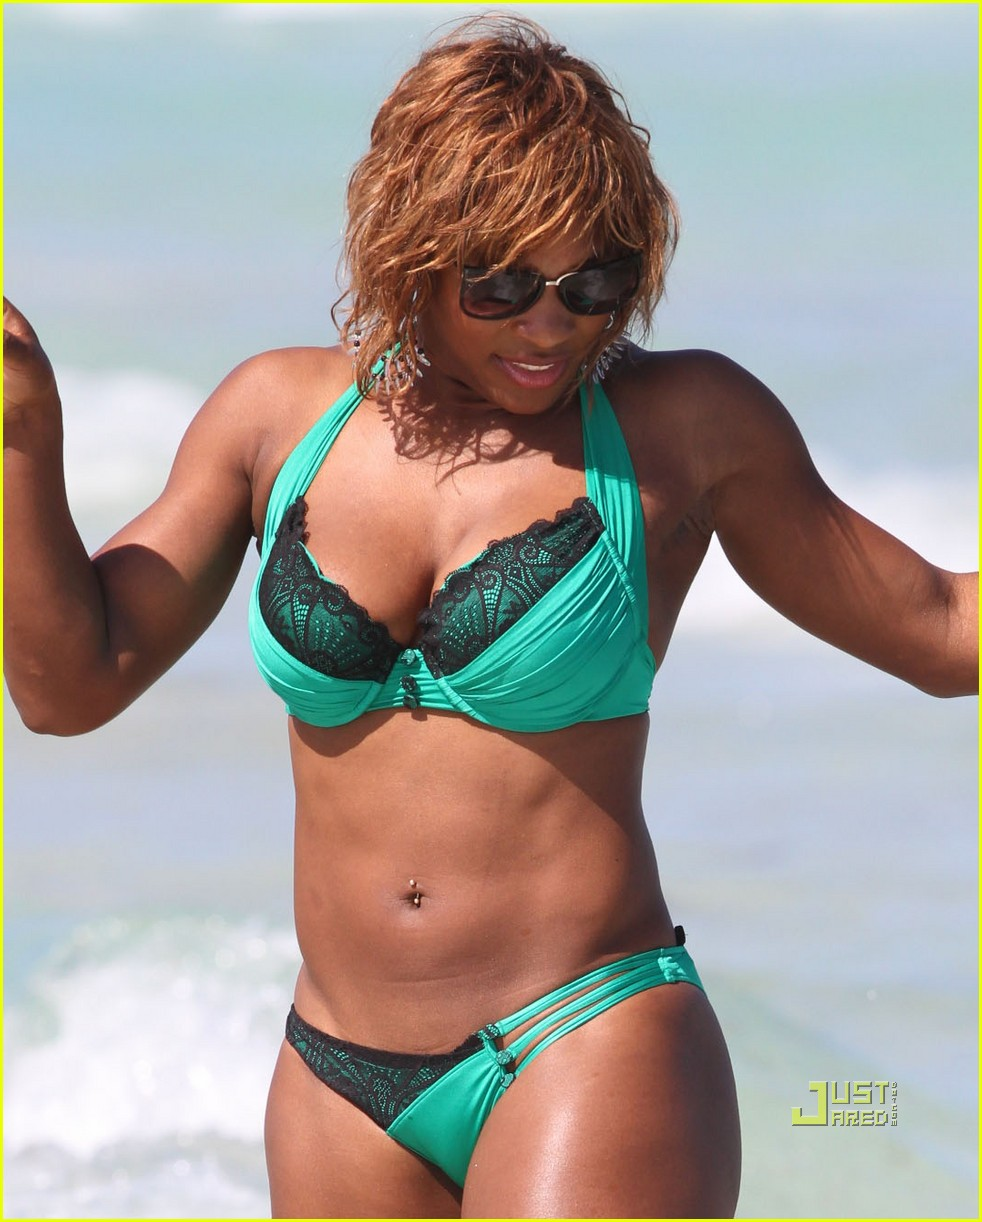 serena williams miami beach bikini How to Train Your Dragon, Tangled, and Toy Story 3,